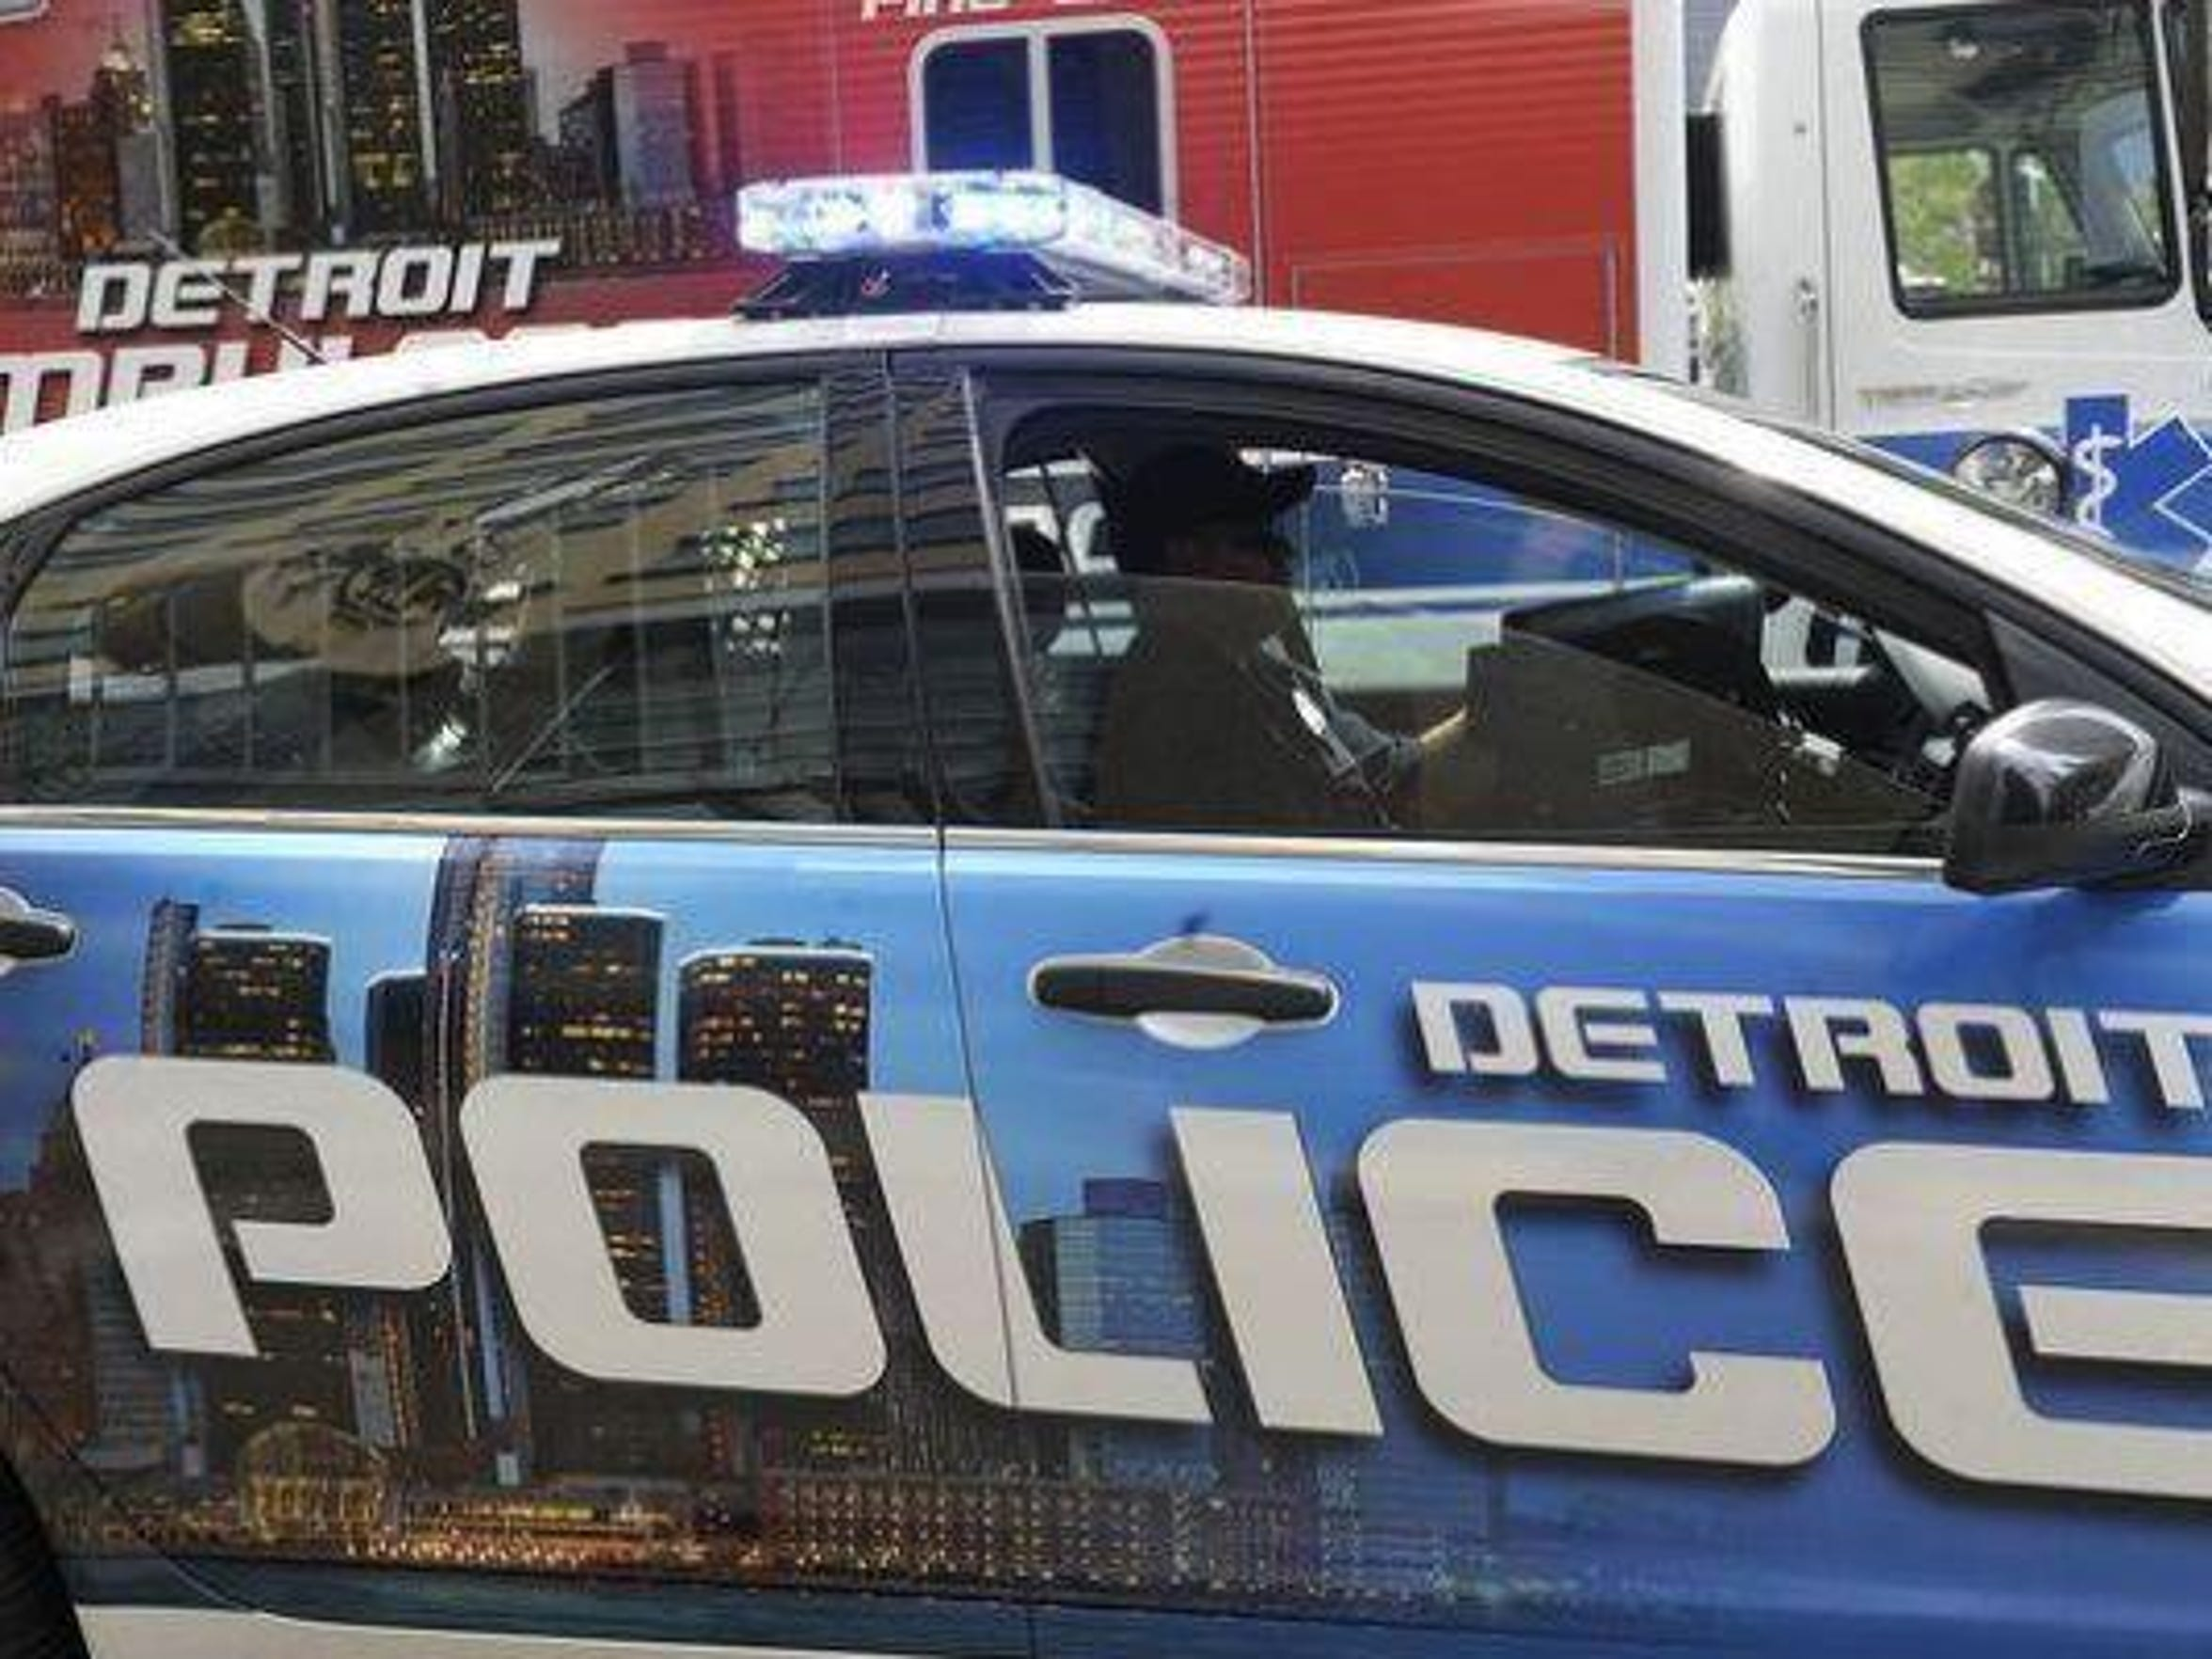 Since 2013, Detroit Police has teamed with the FBI's Violent Gang Task Force, which includes personnel fromHomeland Security Investigations and Michigan State Police.